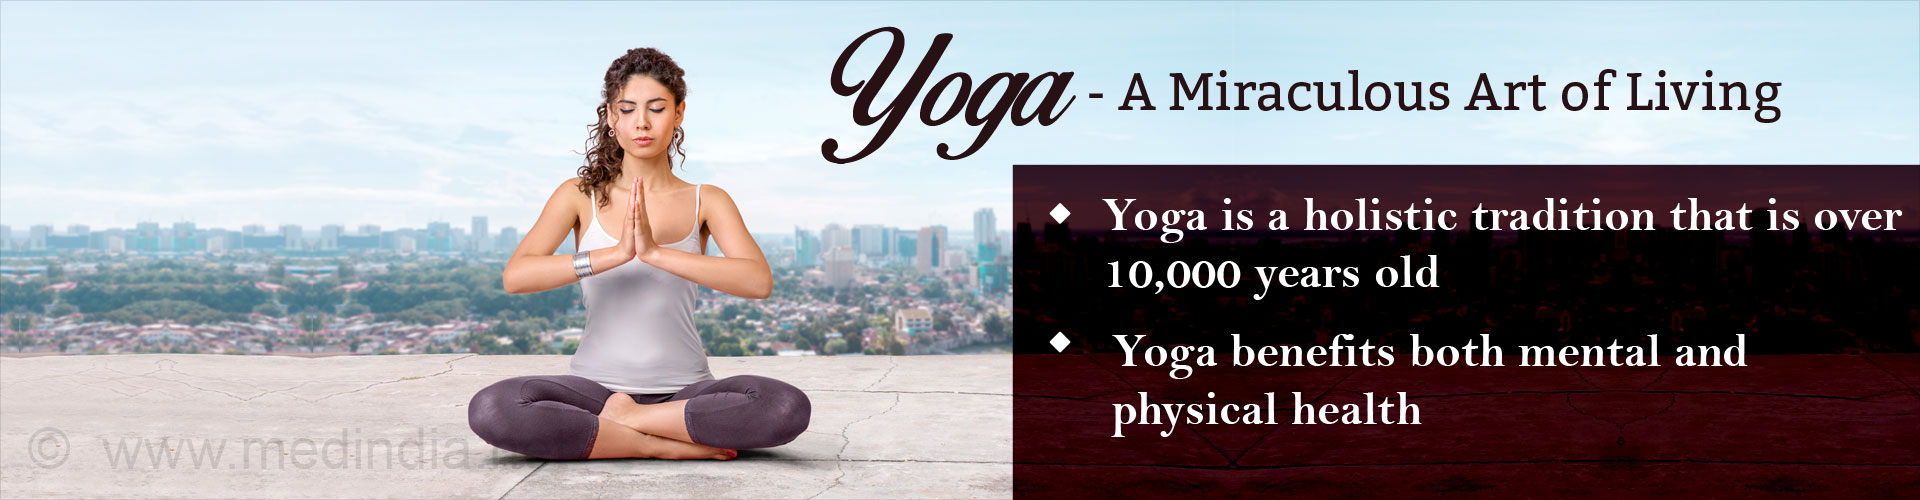 Yoga - A Miraculous Art of Living